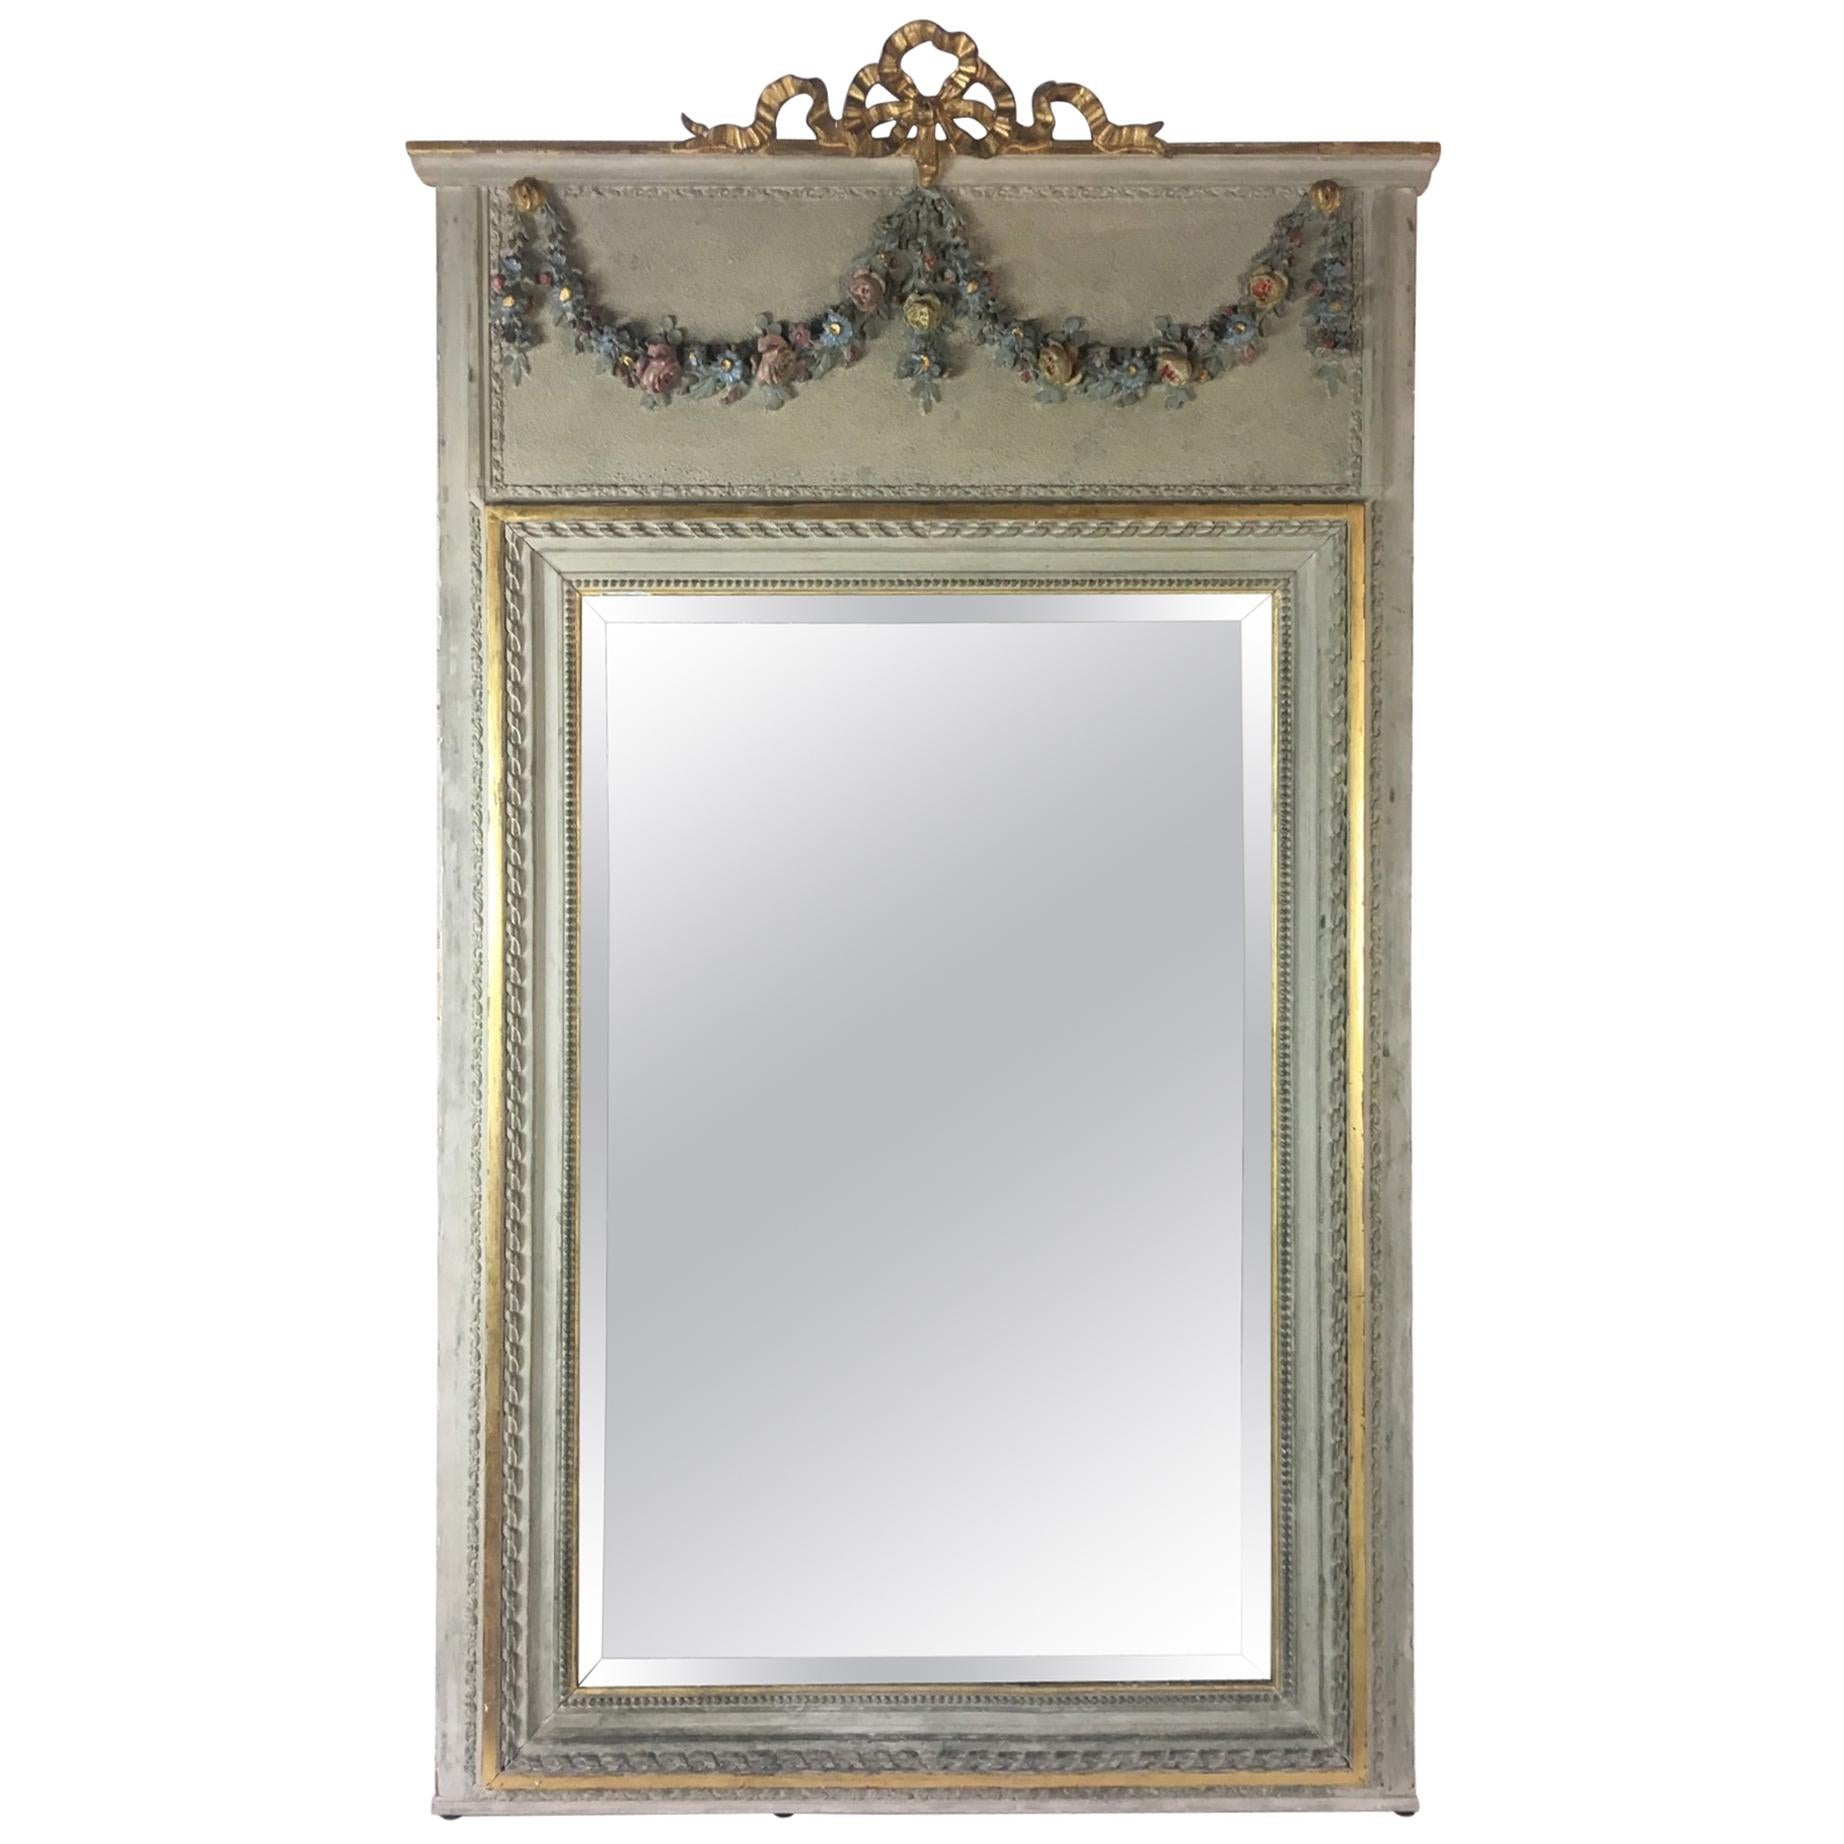 Late 19th Century Gilded Trumeau Mirror